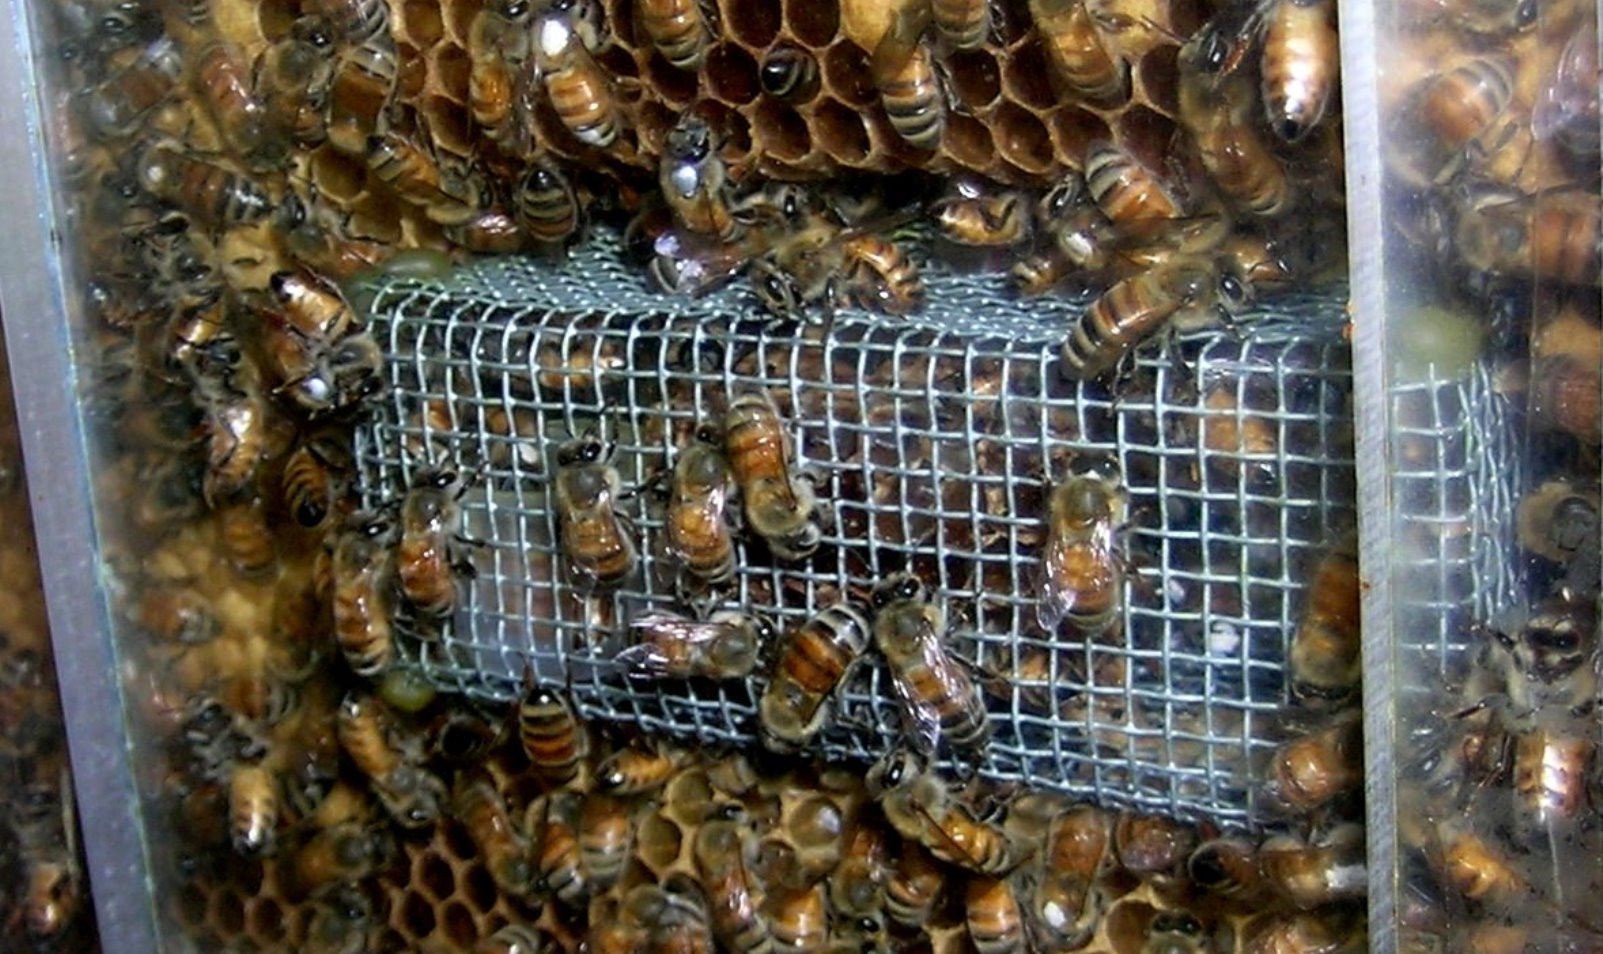 Hebrew University researchers performed a set of large scale experiments with more than 1,000 honeybees in cages and observation hives. Photo by Muki Nagari